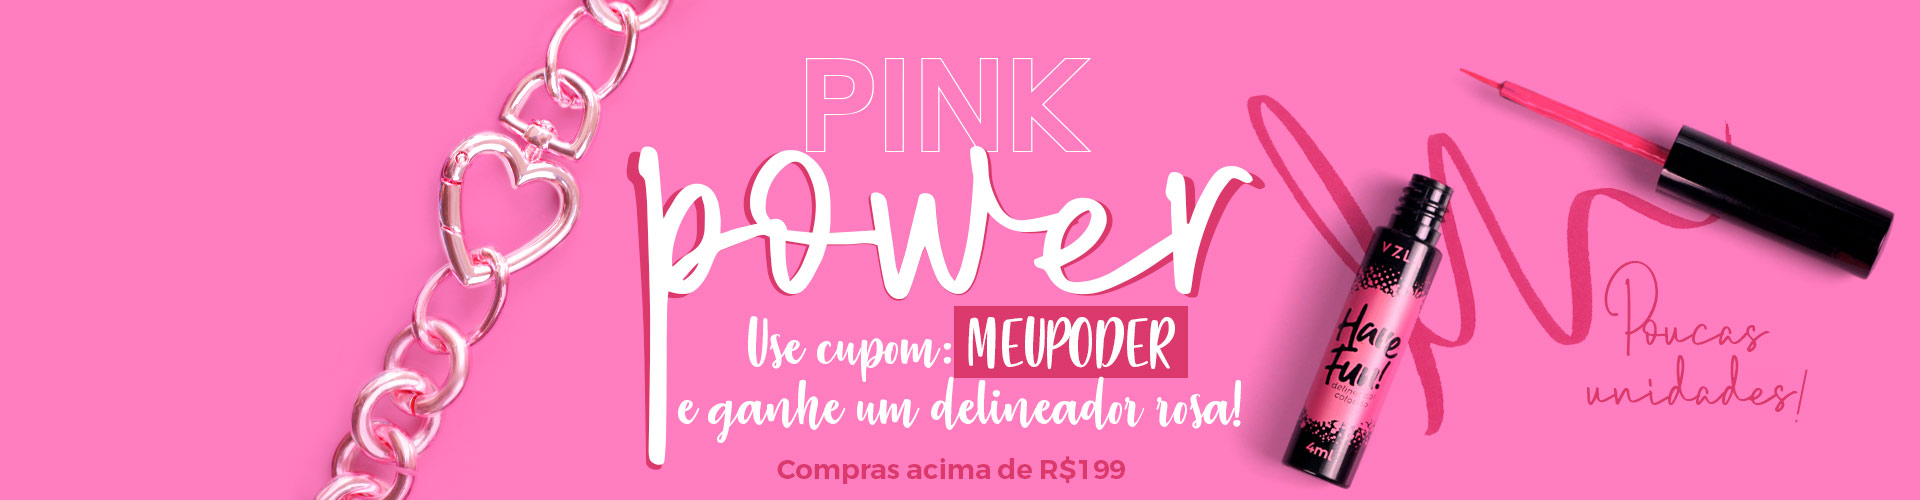 Pink Power - Desktop